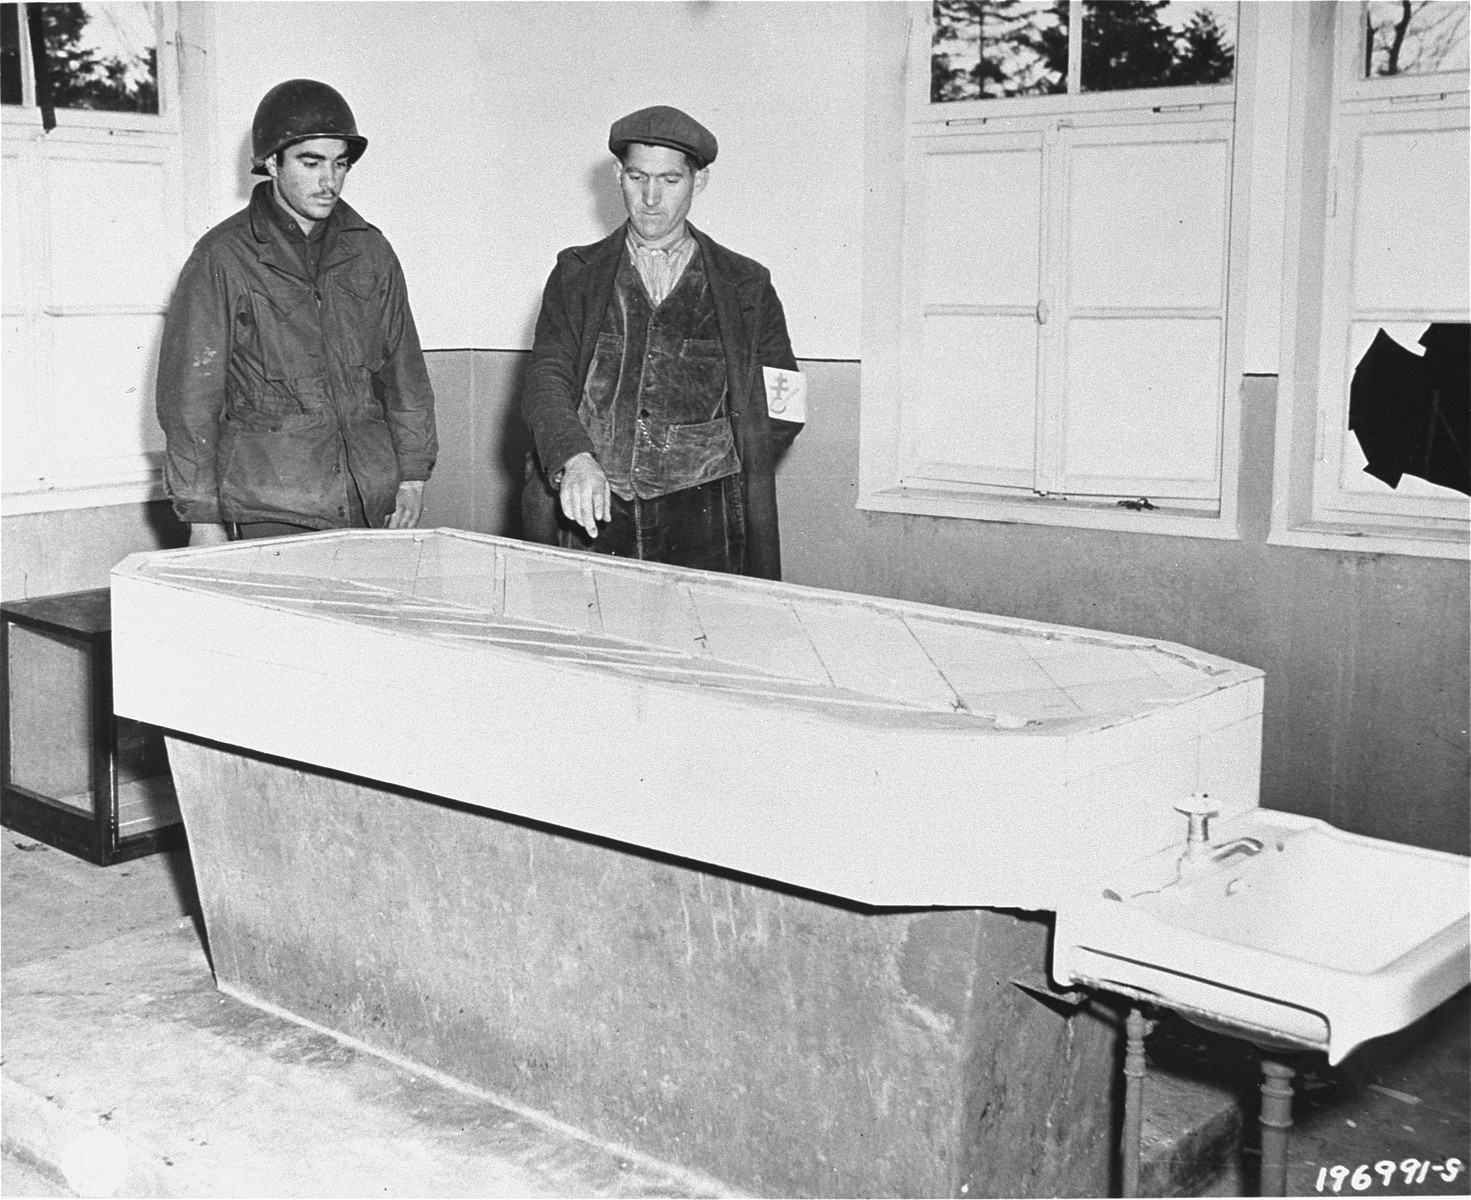 An American soldier and a member of the French resistance examine an autopsy table in the Natzweiler-Struthof concentration camp.